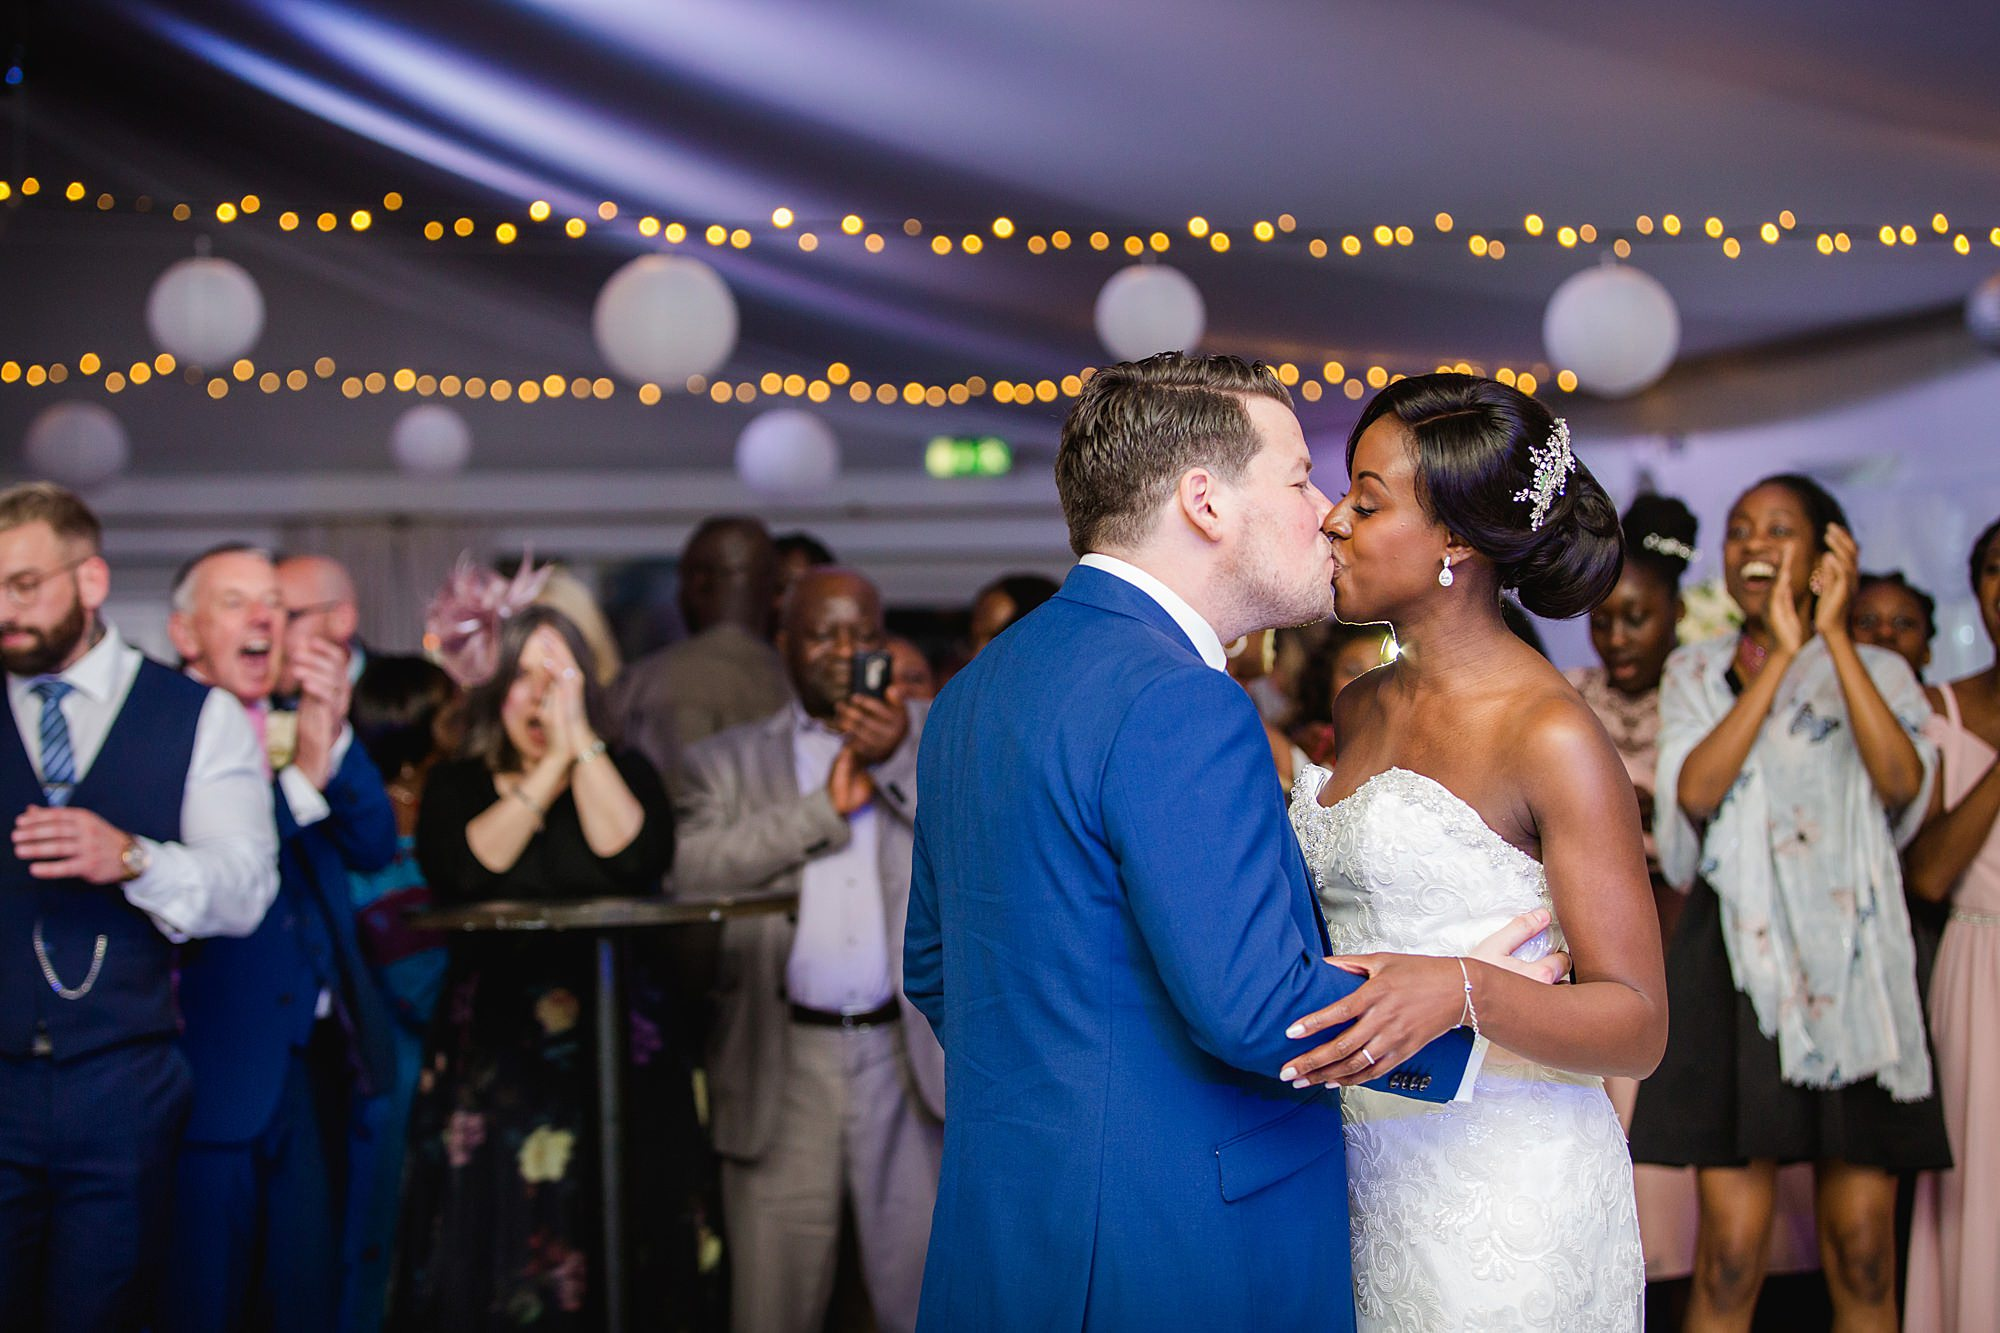 Bank of England Sports Centre wedding bride and groom kiss during first dance